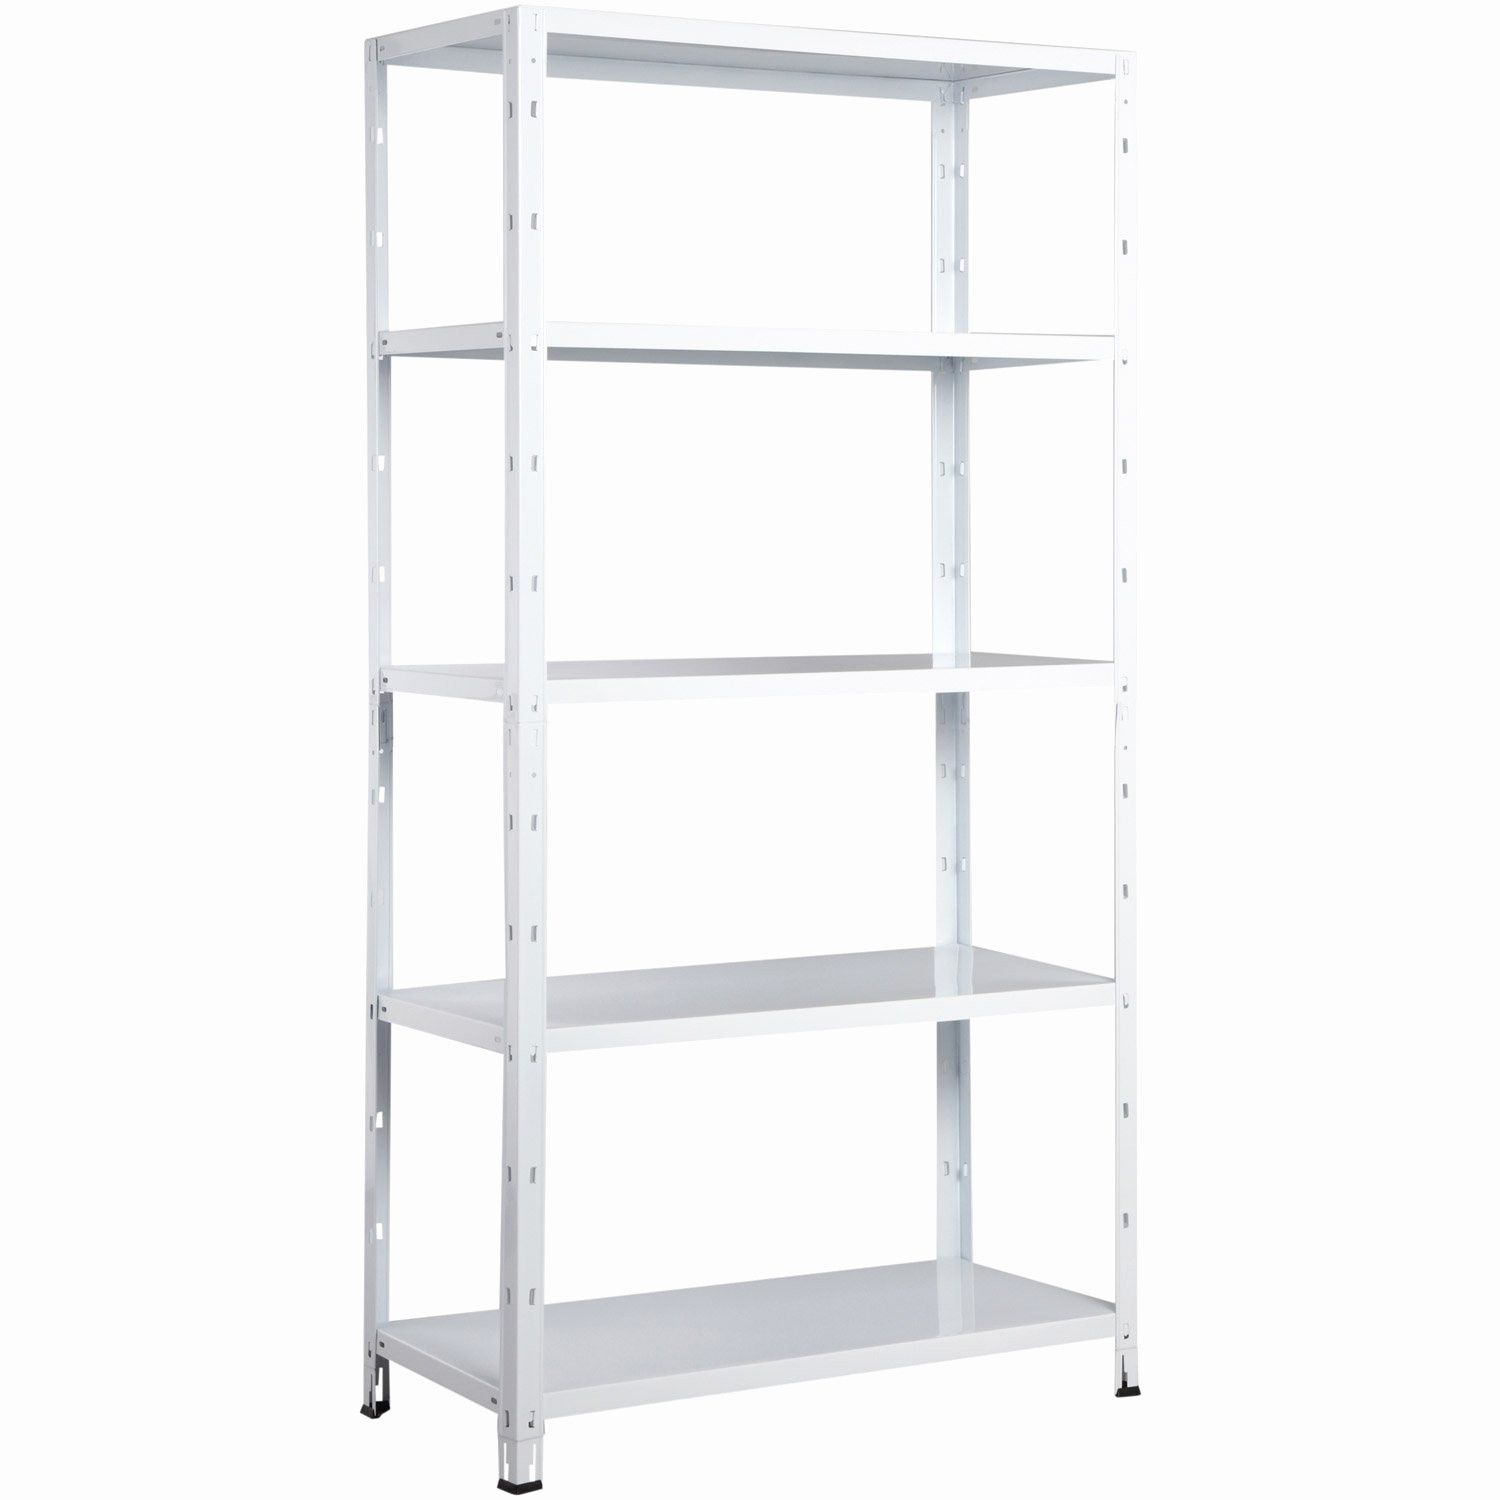 Fresh Etagere Inox Cuisine Leroy Merlin Steel Shelving Unit Steel Shelving Shelving Unit